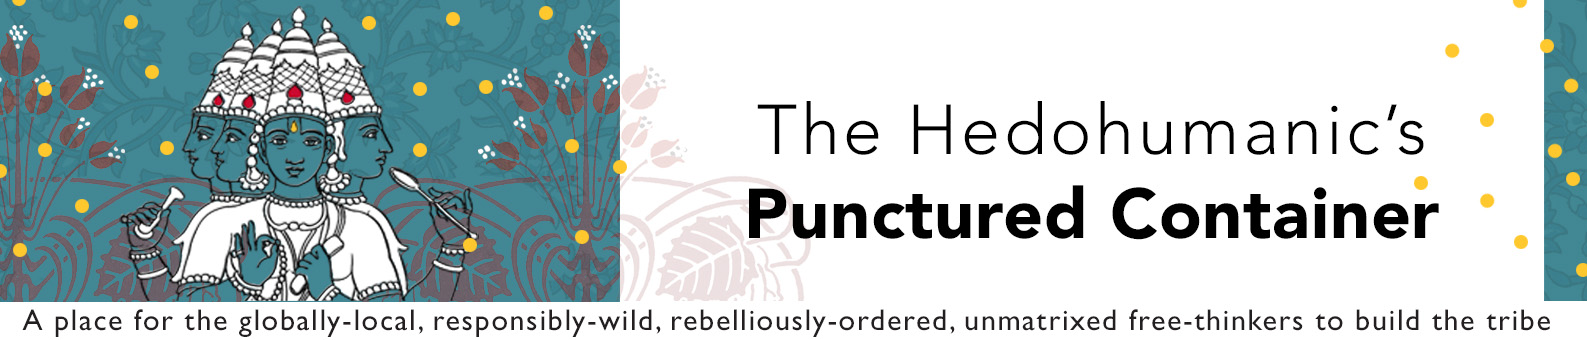 The Hedohumanic's Punctured Container